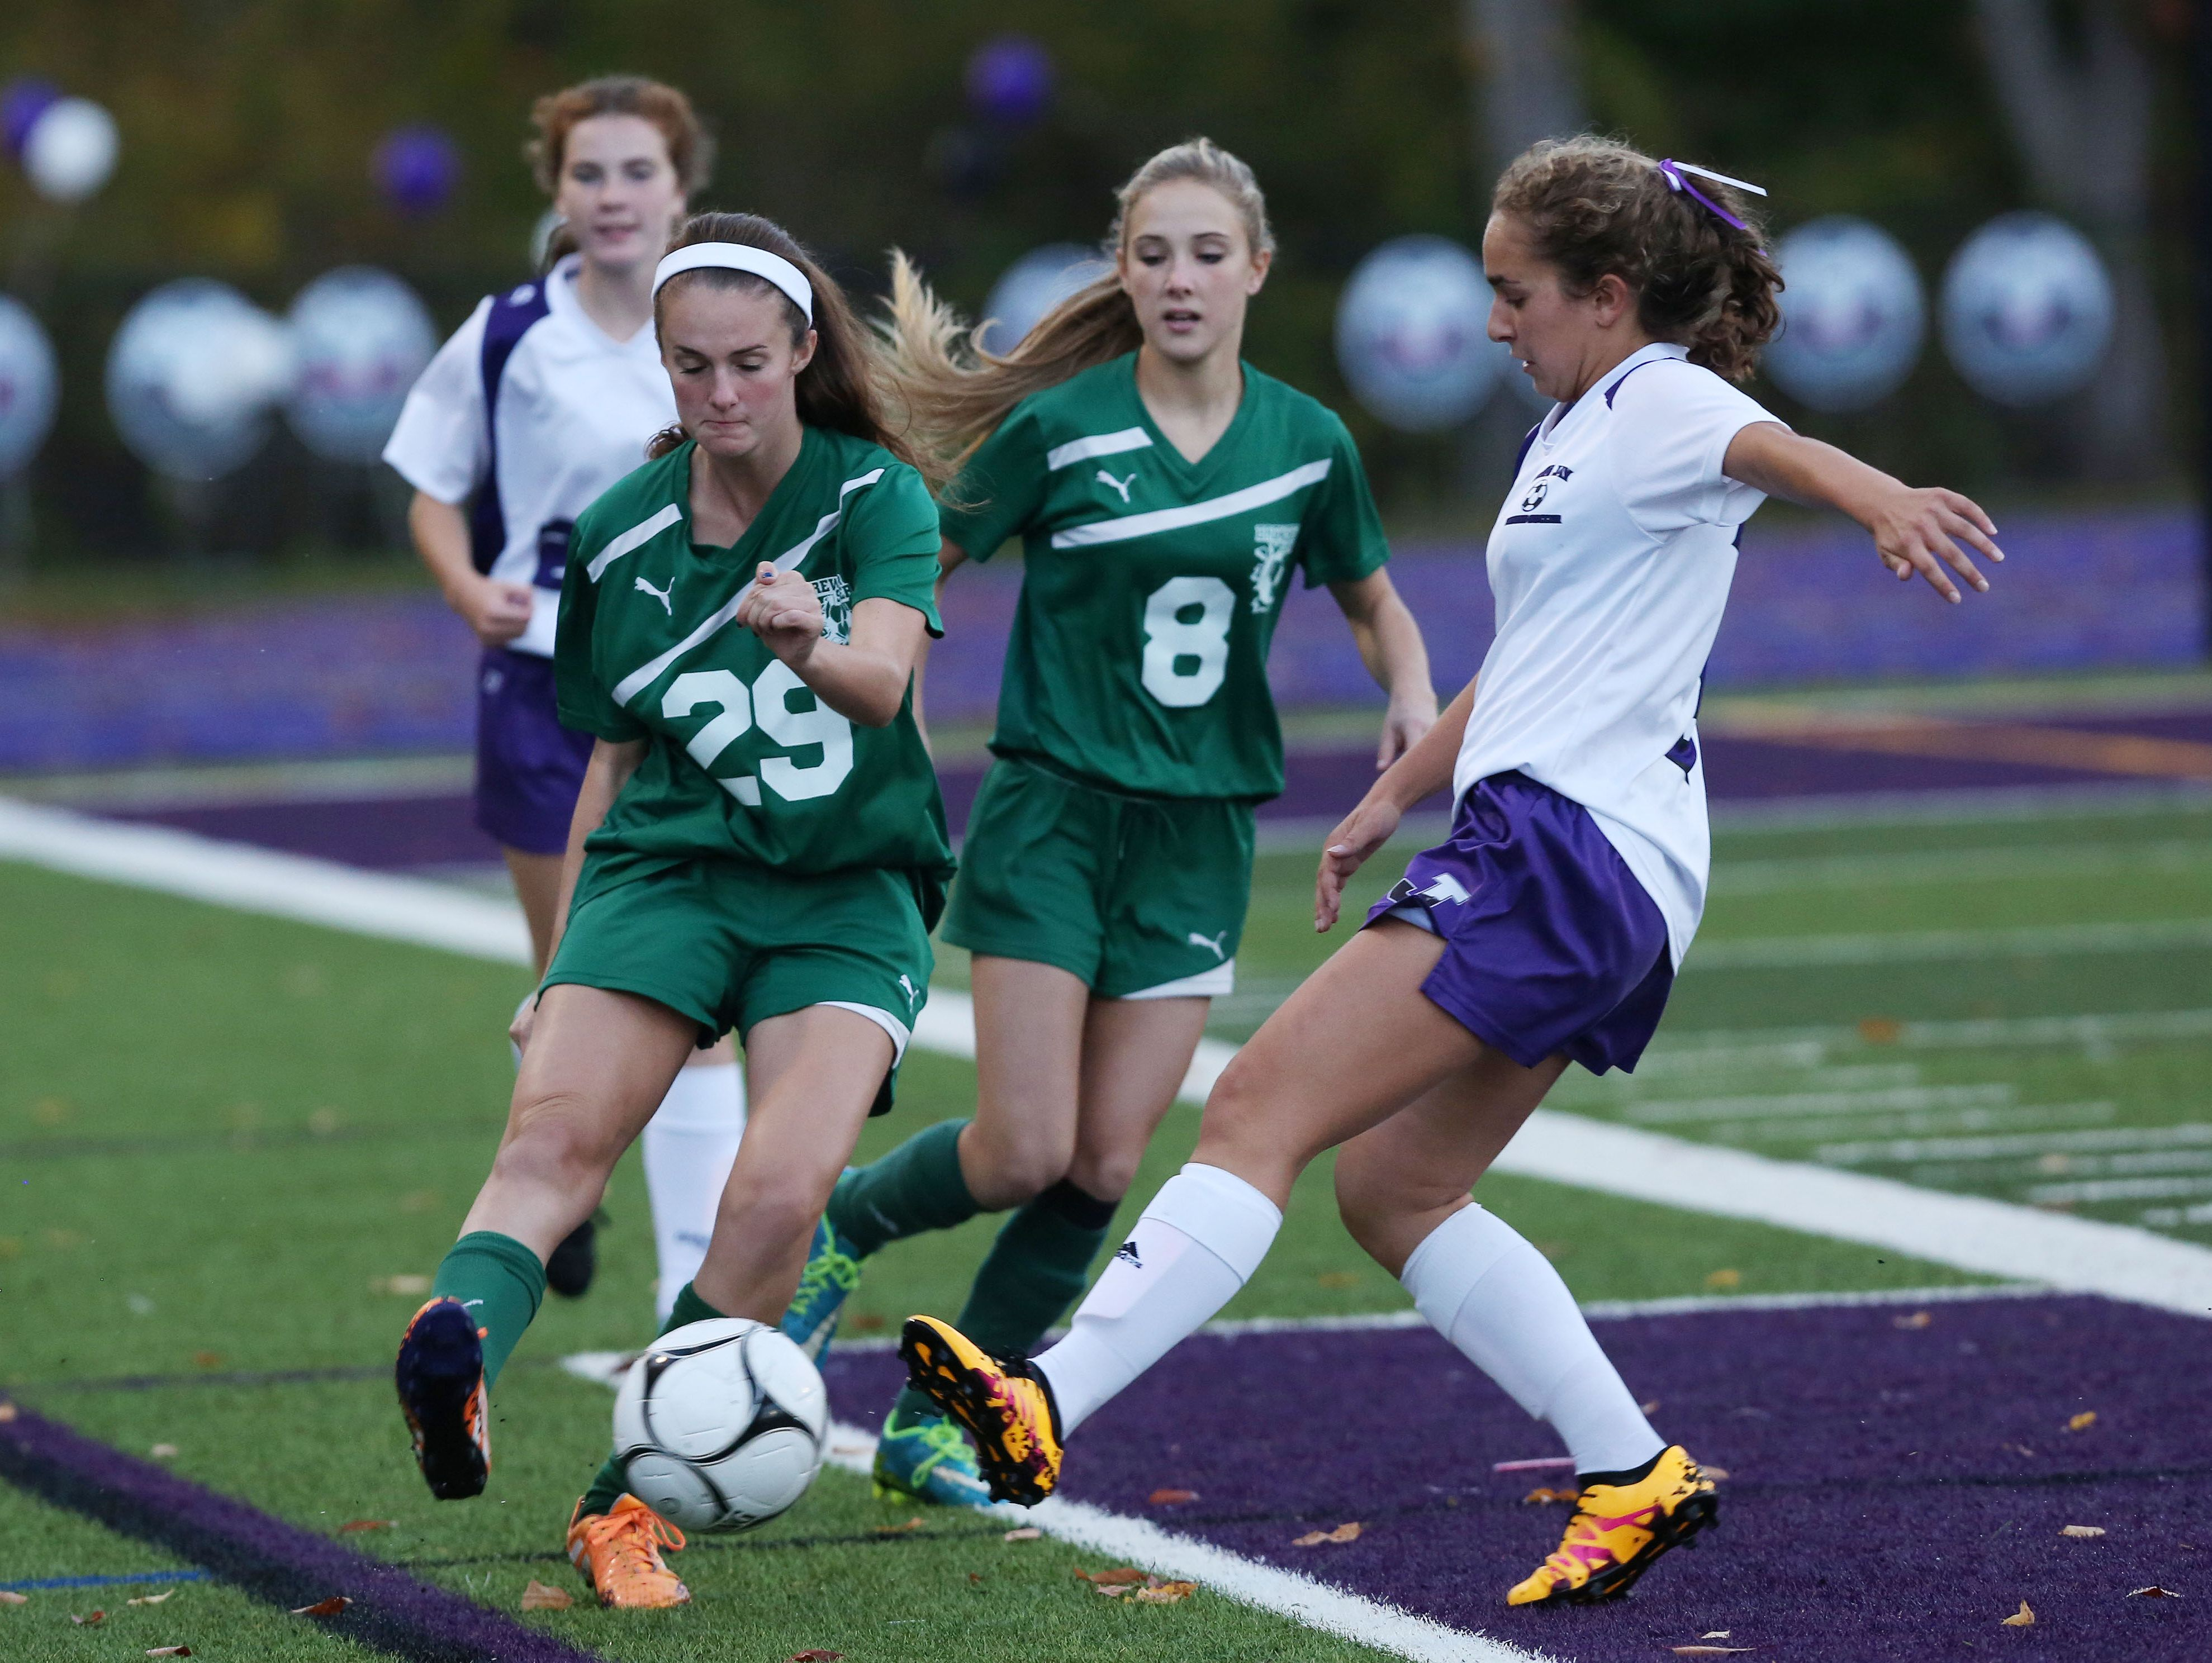 Brewster's Maggie Depaoli, left, and John Jay's Kayla Brandt battle for ball control during their game at John Jay High School in Cross River on Thursday. John Jay won the game 6-0.